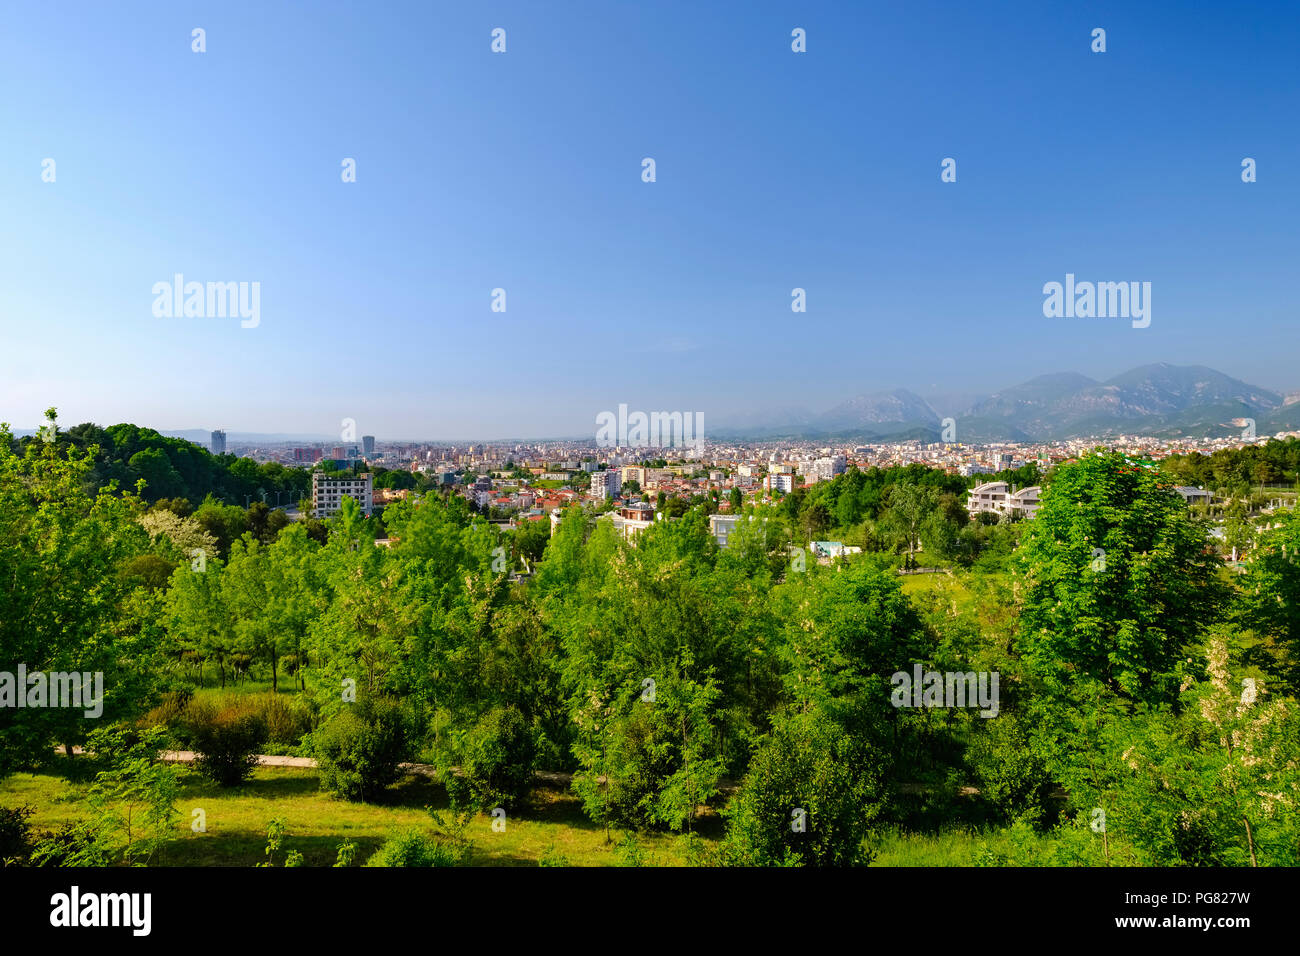 Albania, Tirana, View from National Martyrs Cemetery to the city - Stock Image